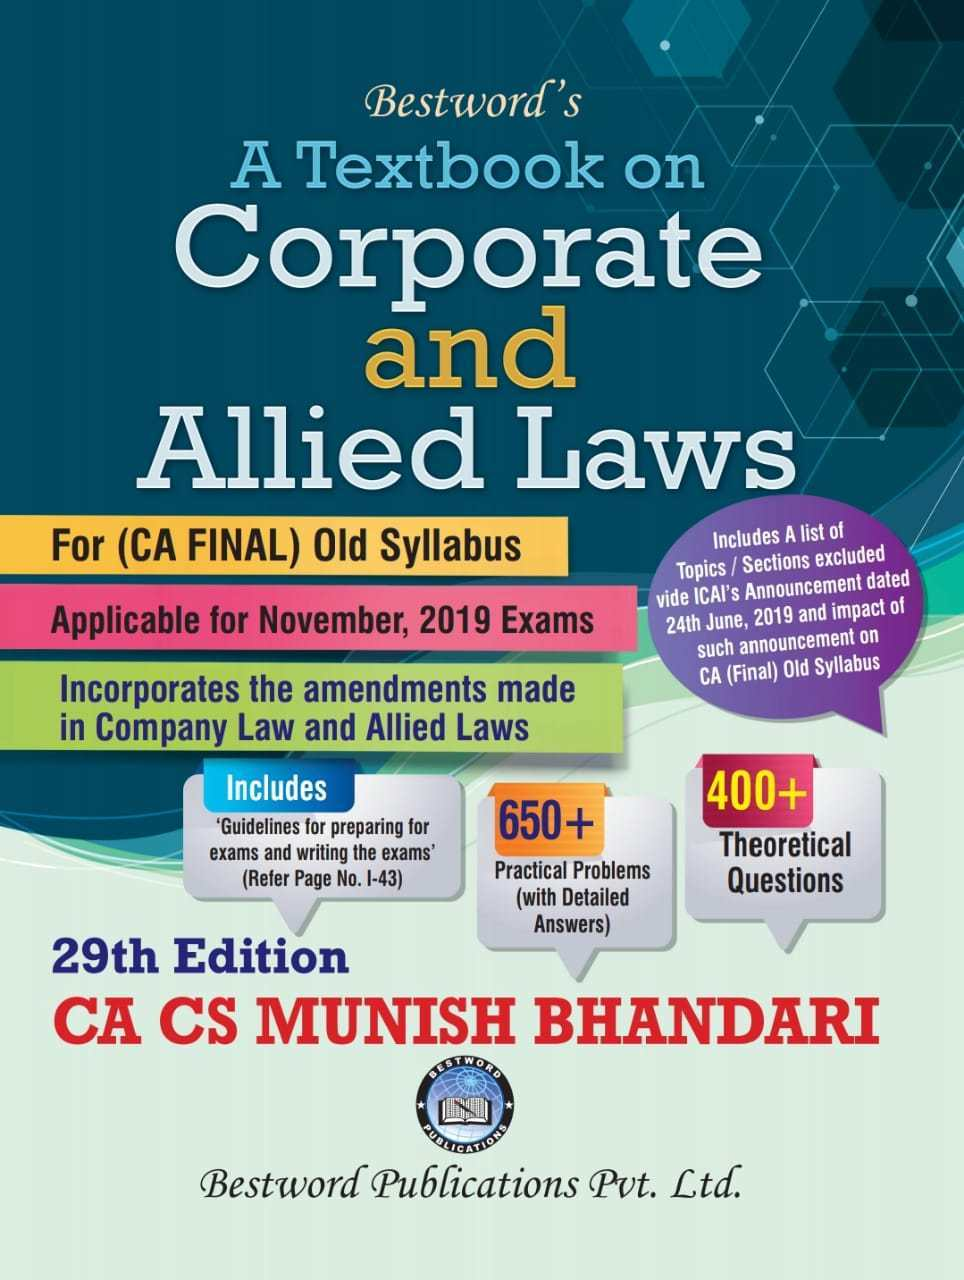 Bestword's Corporate and Allied Laws for CA Final for Nov 2019 exam by CA Munish Bhandari (Bestword's Publishing)